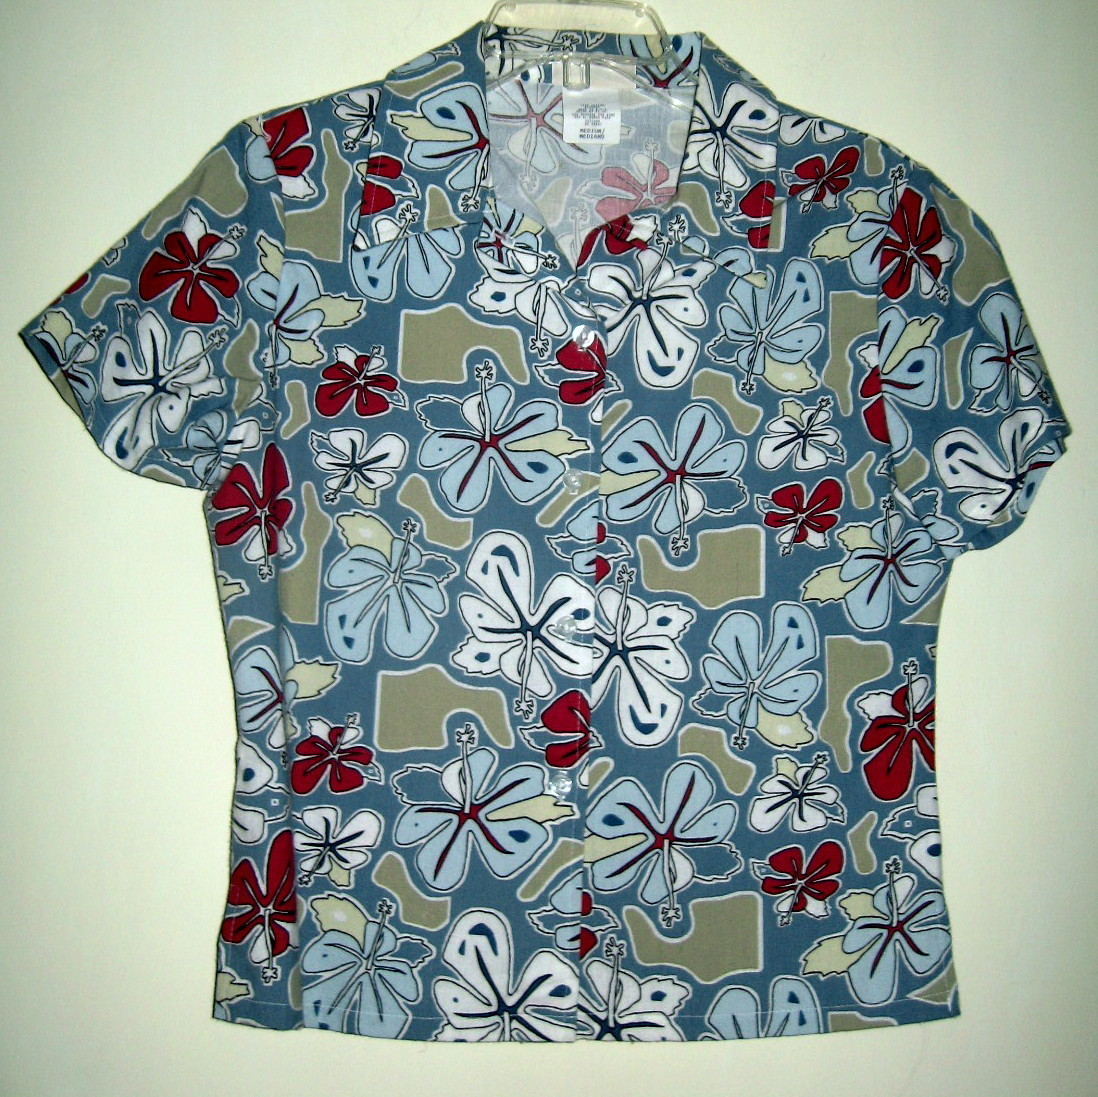 Primary image for YOUNG LADIES HAWAIIAN SURF SHIRT, NEW, NEVER WORN, SIZE MEDIUM, SHORT SLEEVES